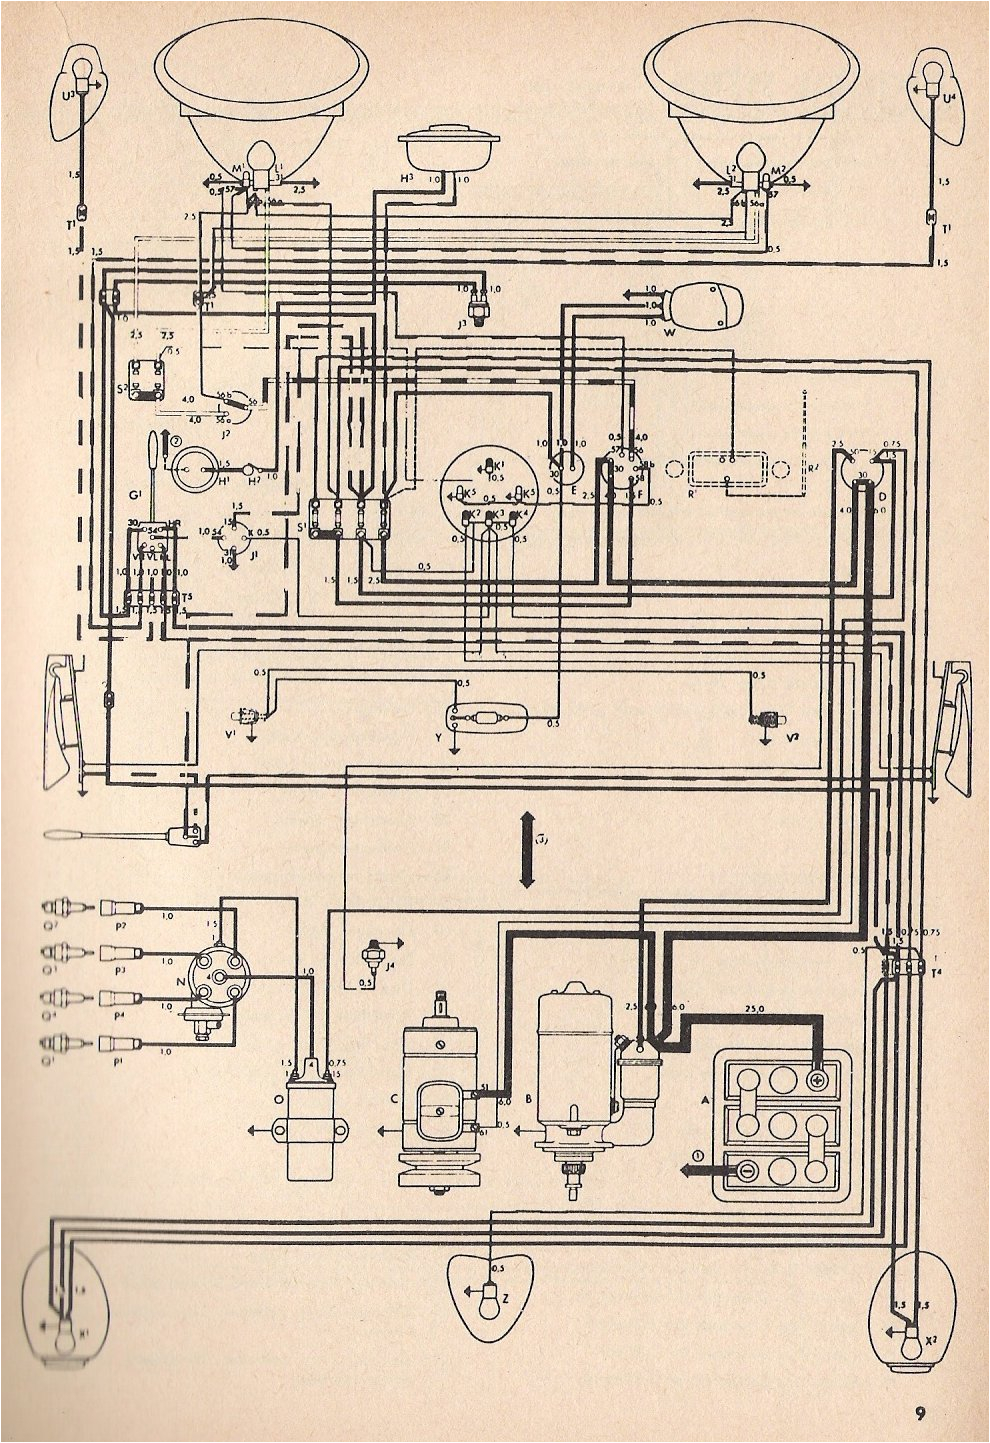 1974 vw beetle wiring diagram 275477 jpg